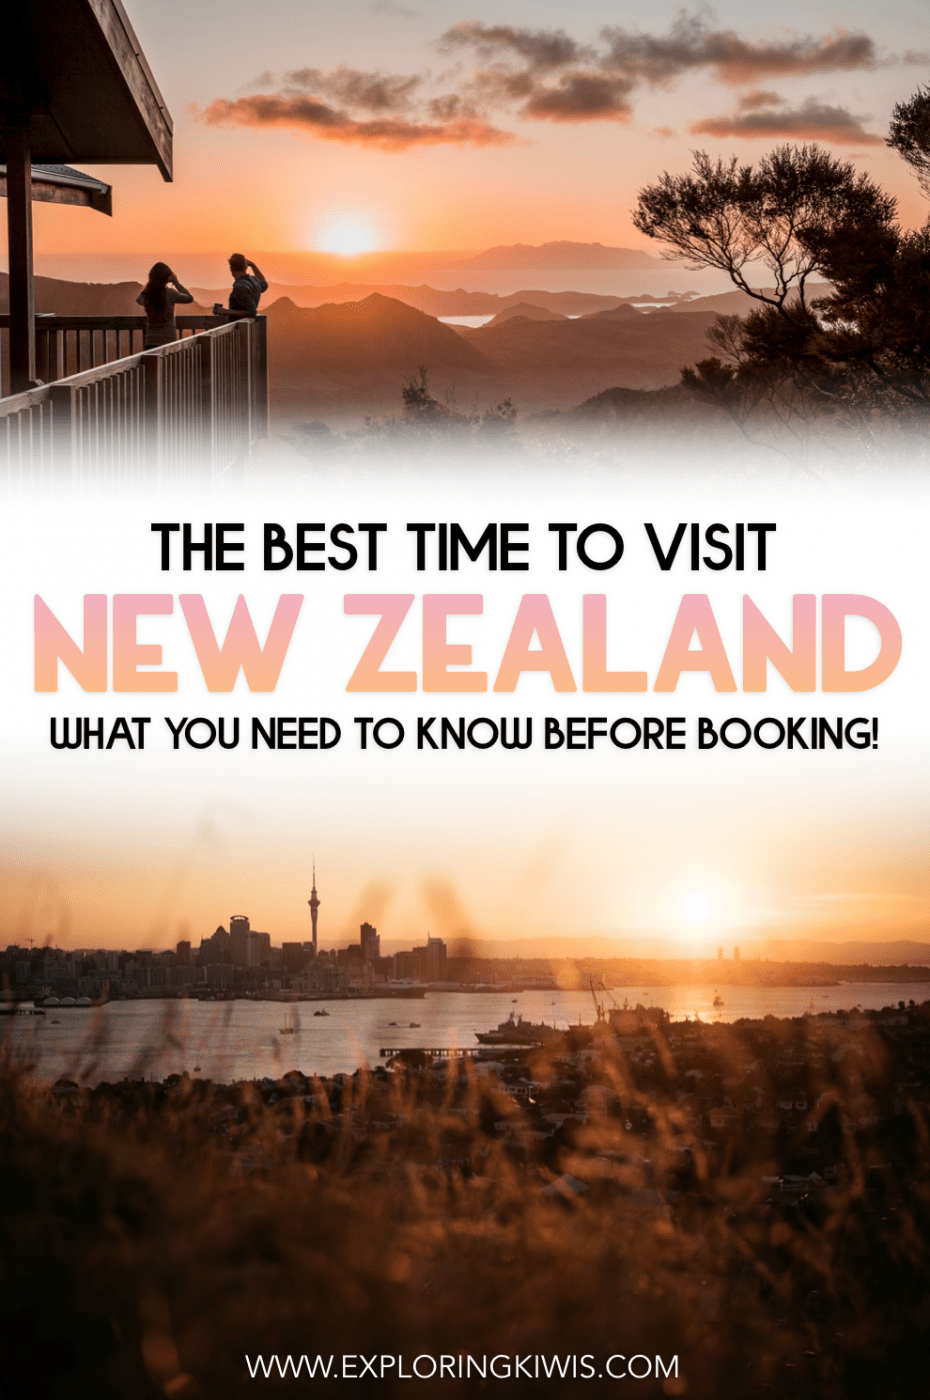 If you\'re wondering when the best time to visit New Zealand is, you have to read this guide! Covering off seasons, weather, school and public holidays and more, it will help you plan the very best vacation possible.